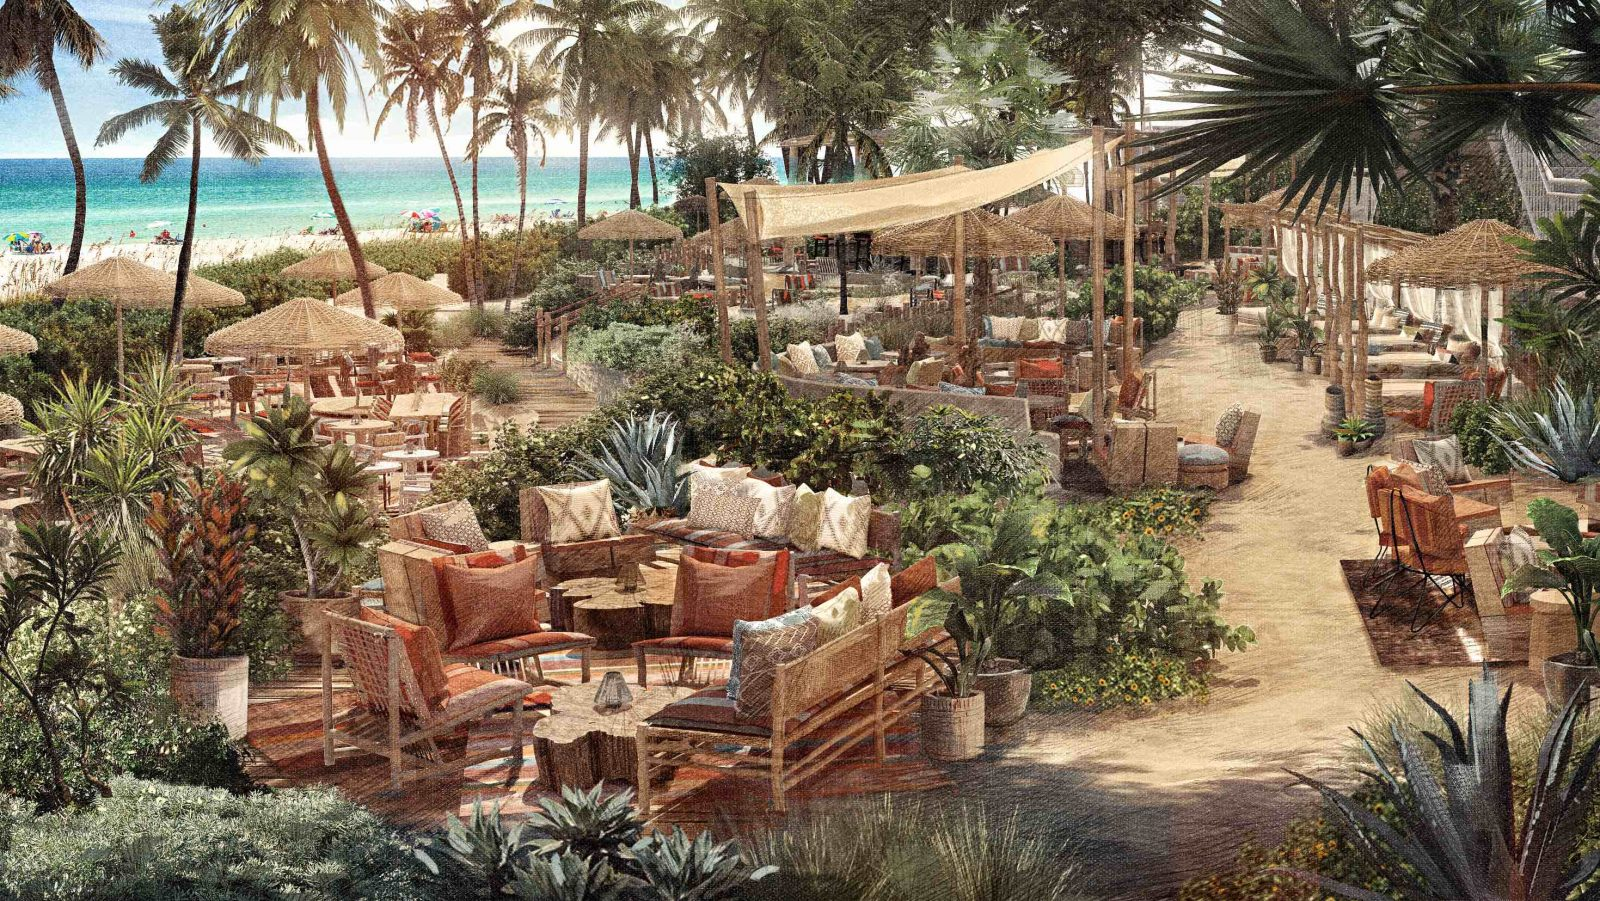 1 Hotel South Beach Launches Tulum-Inspired 1 Beach Club + New Restaurant, Wave